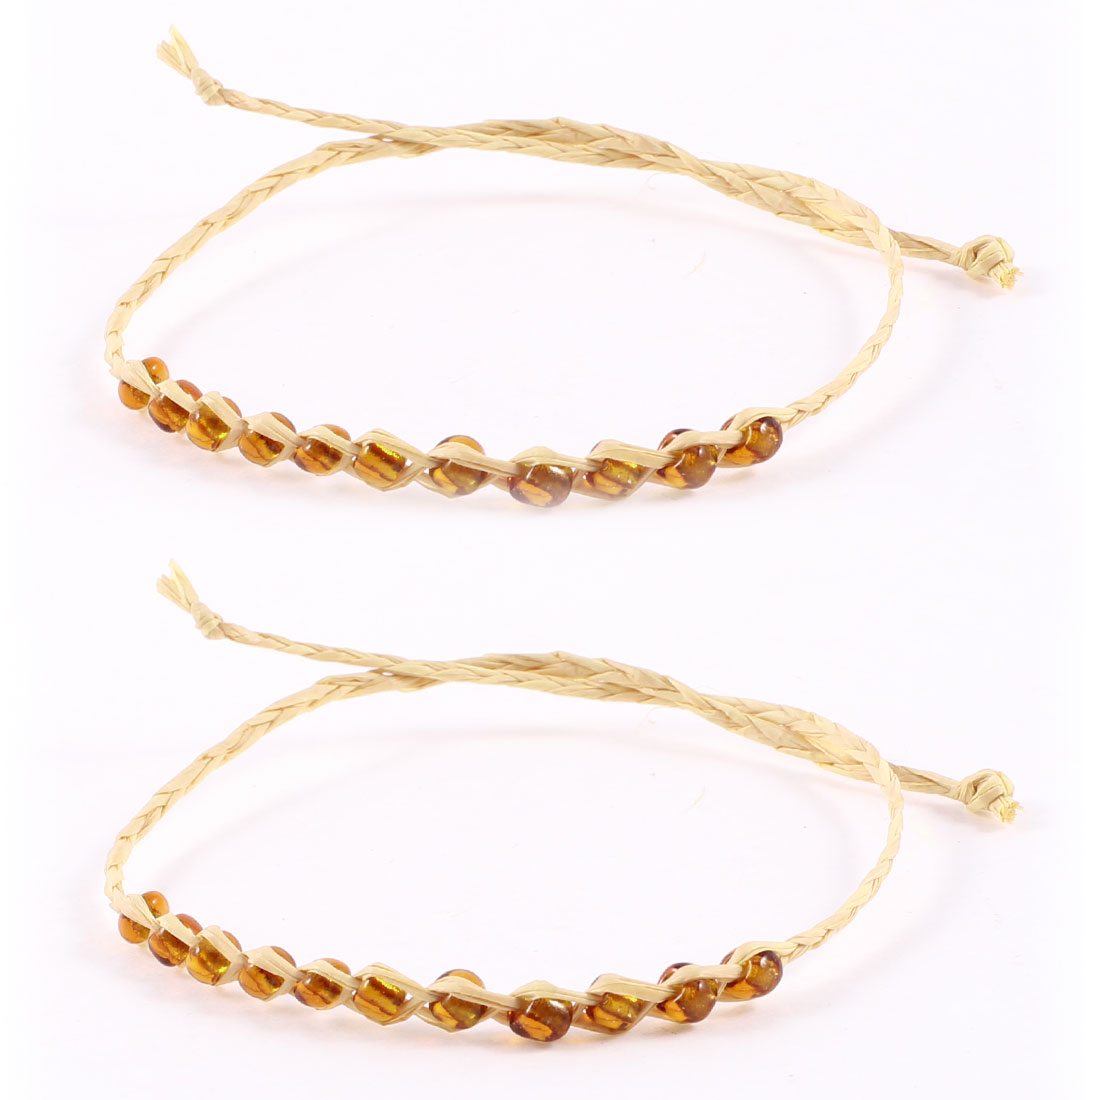 Beige Brown Plastic Beads Decorated Self Tie Straw Bracelet Bangle 2 Pcs